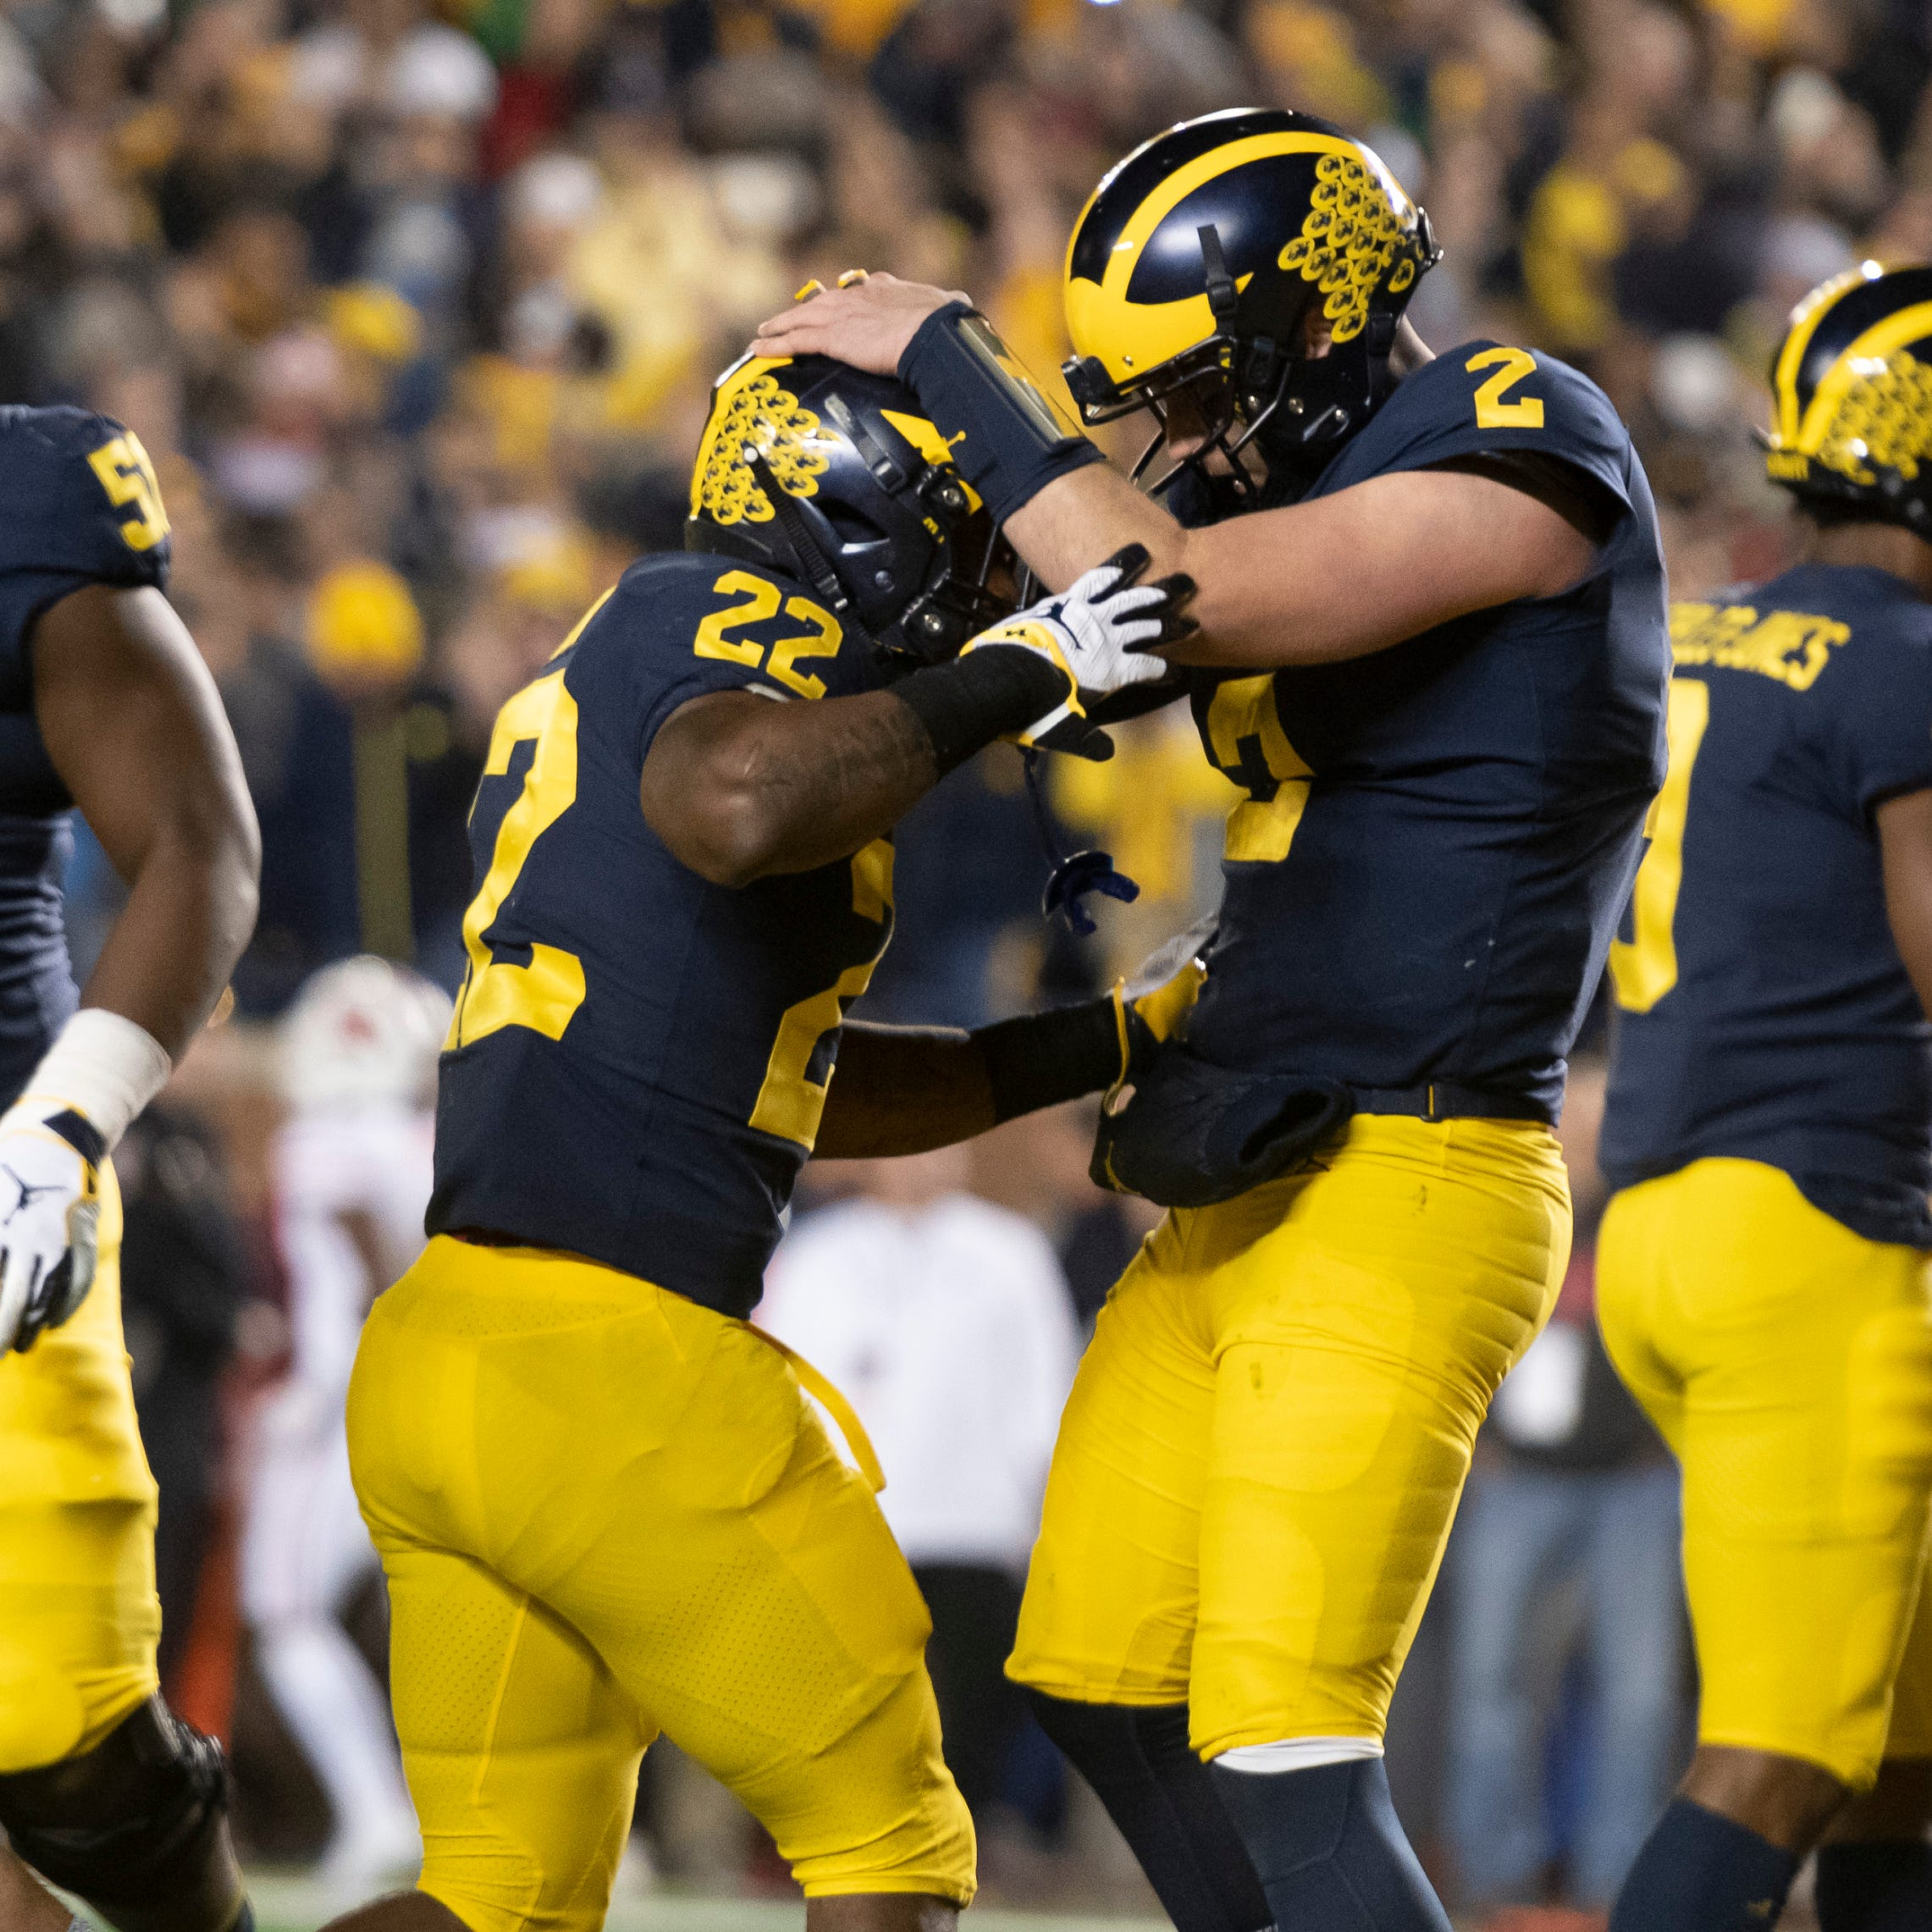 Harbaugh: Wolverines will be 'really intense' against Spartans